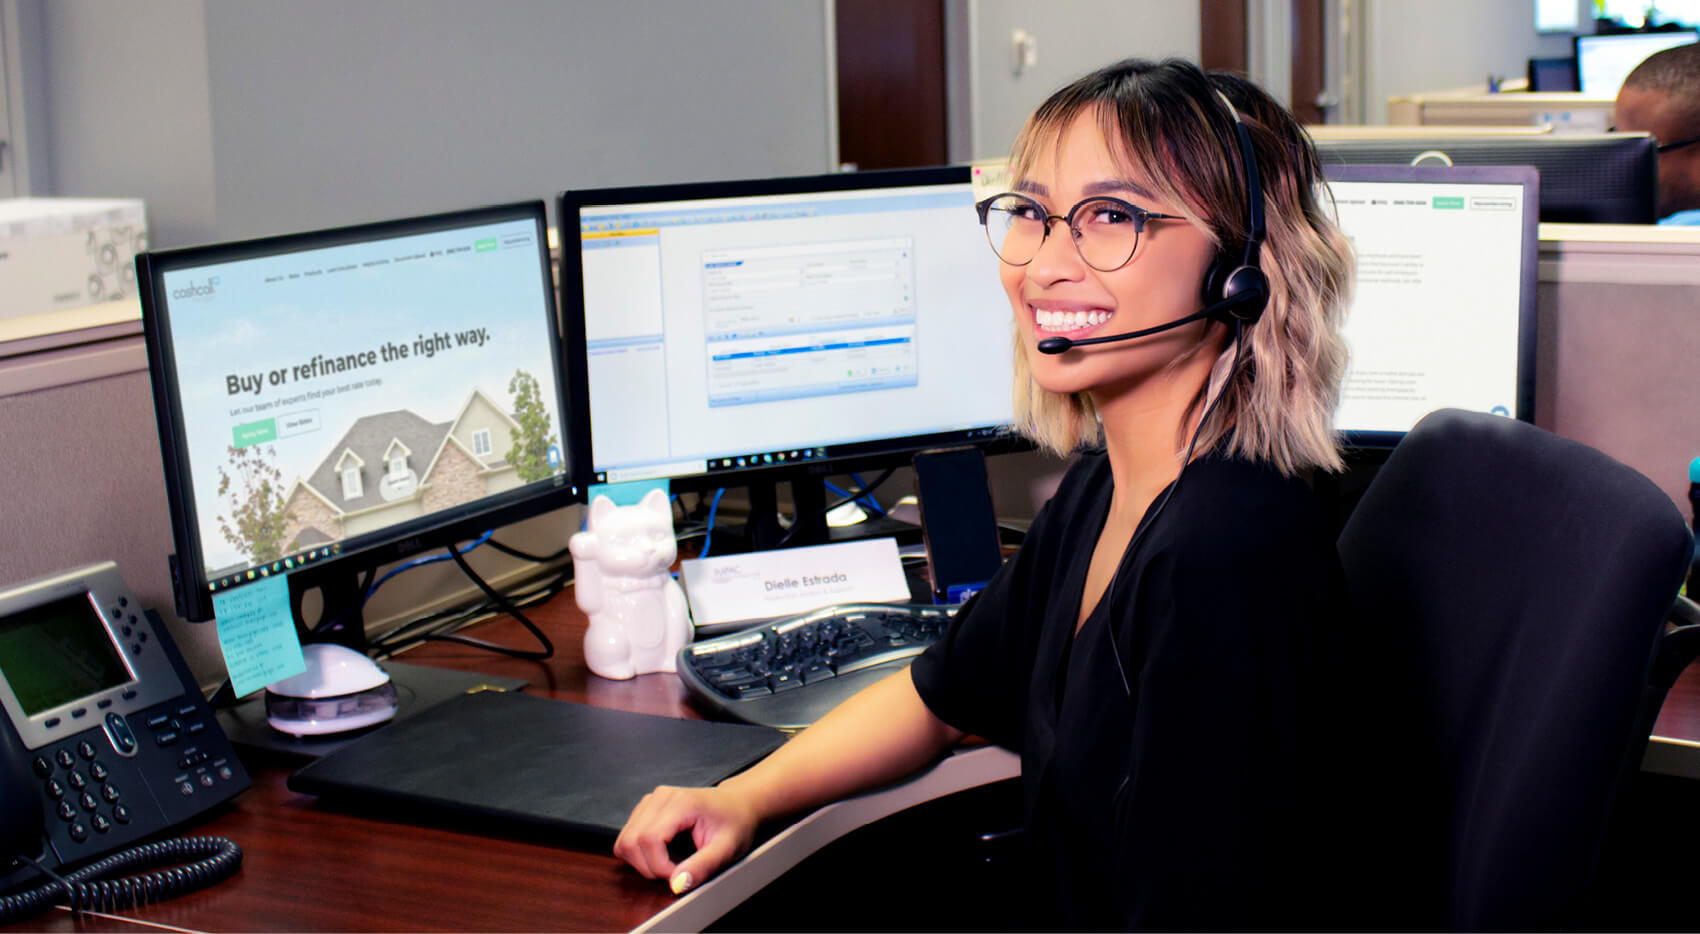 Impac Cashcall customer service rep with headset